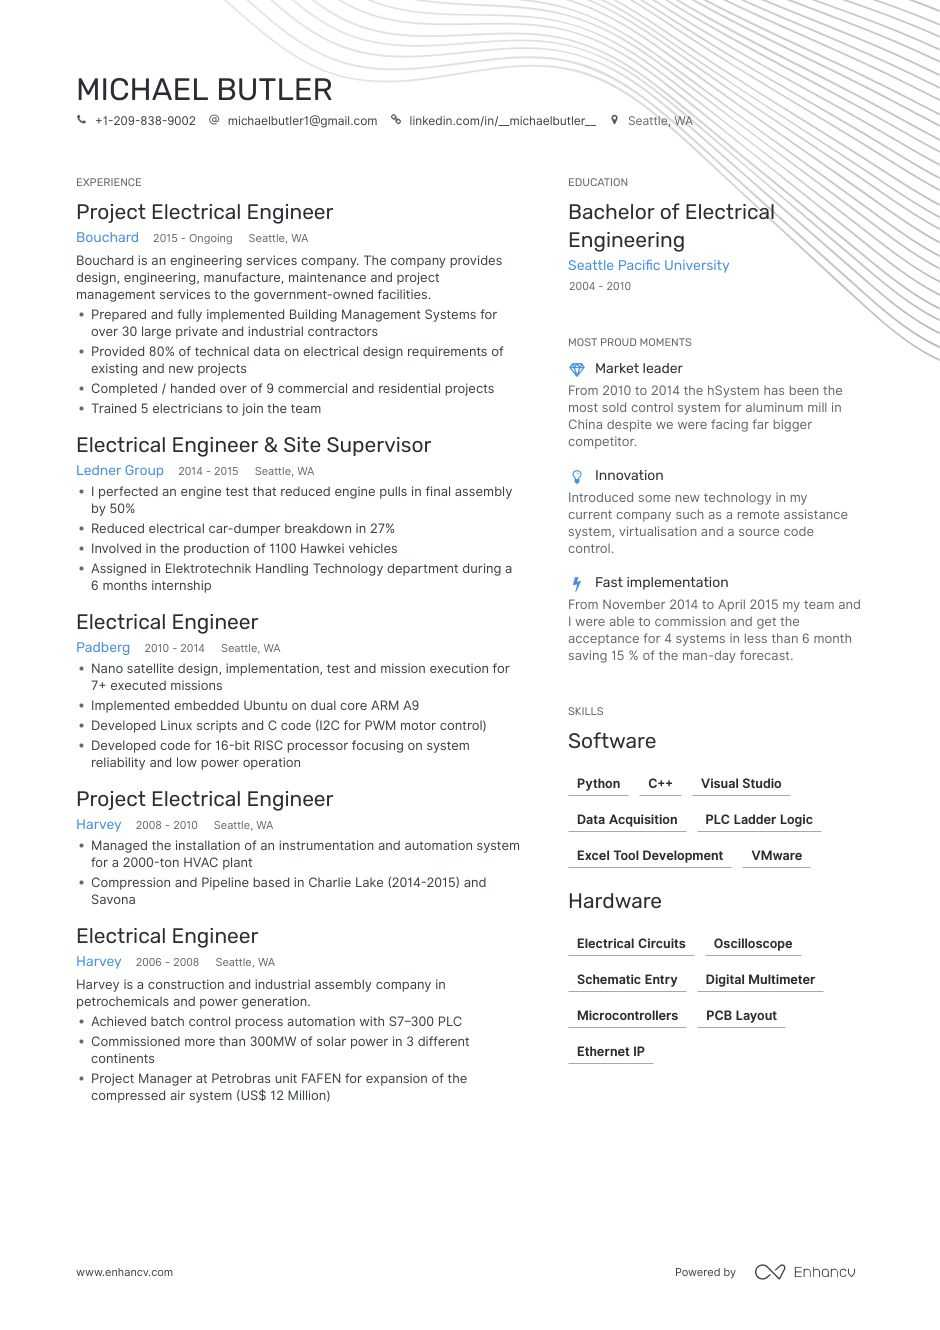 electrical engineer resume examples pro tips featured enhancv template for internship Resume Resume Template For Internship Engineering